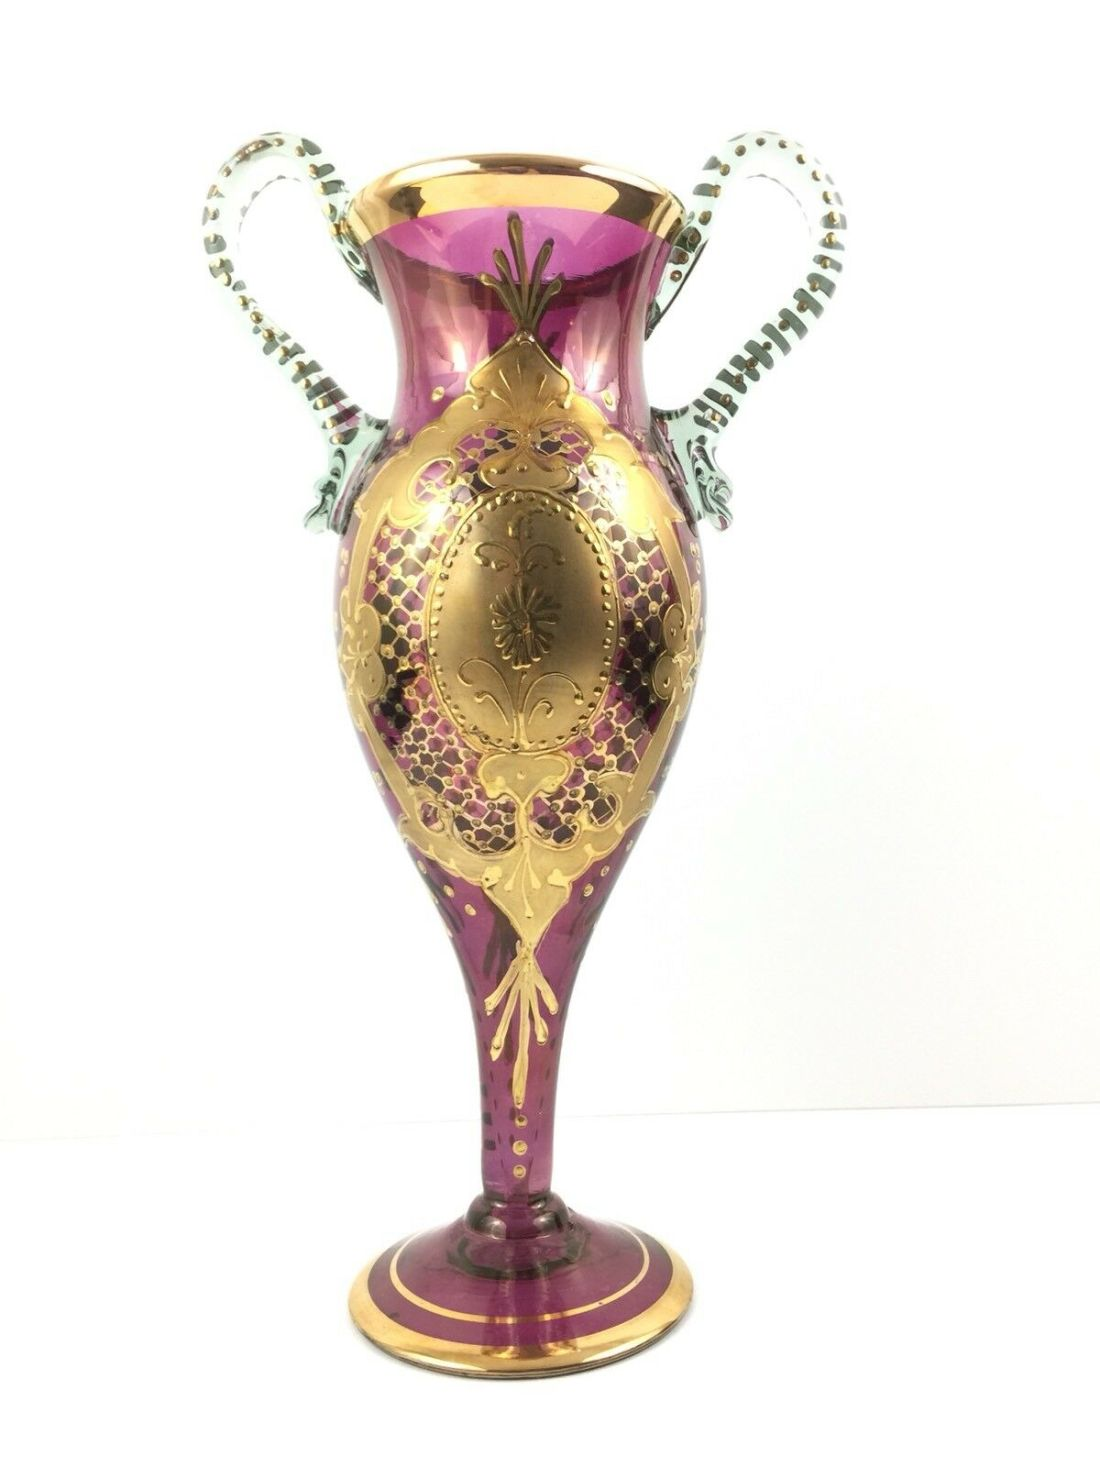 Amethyst jeweled vase with clear glass handles. No date.